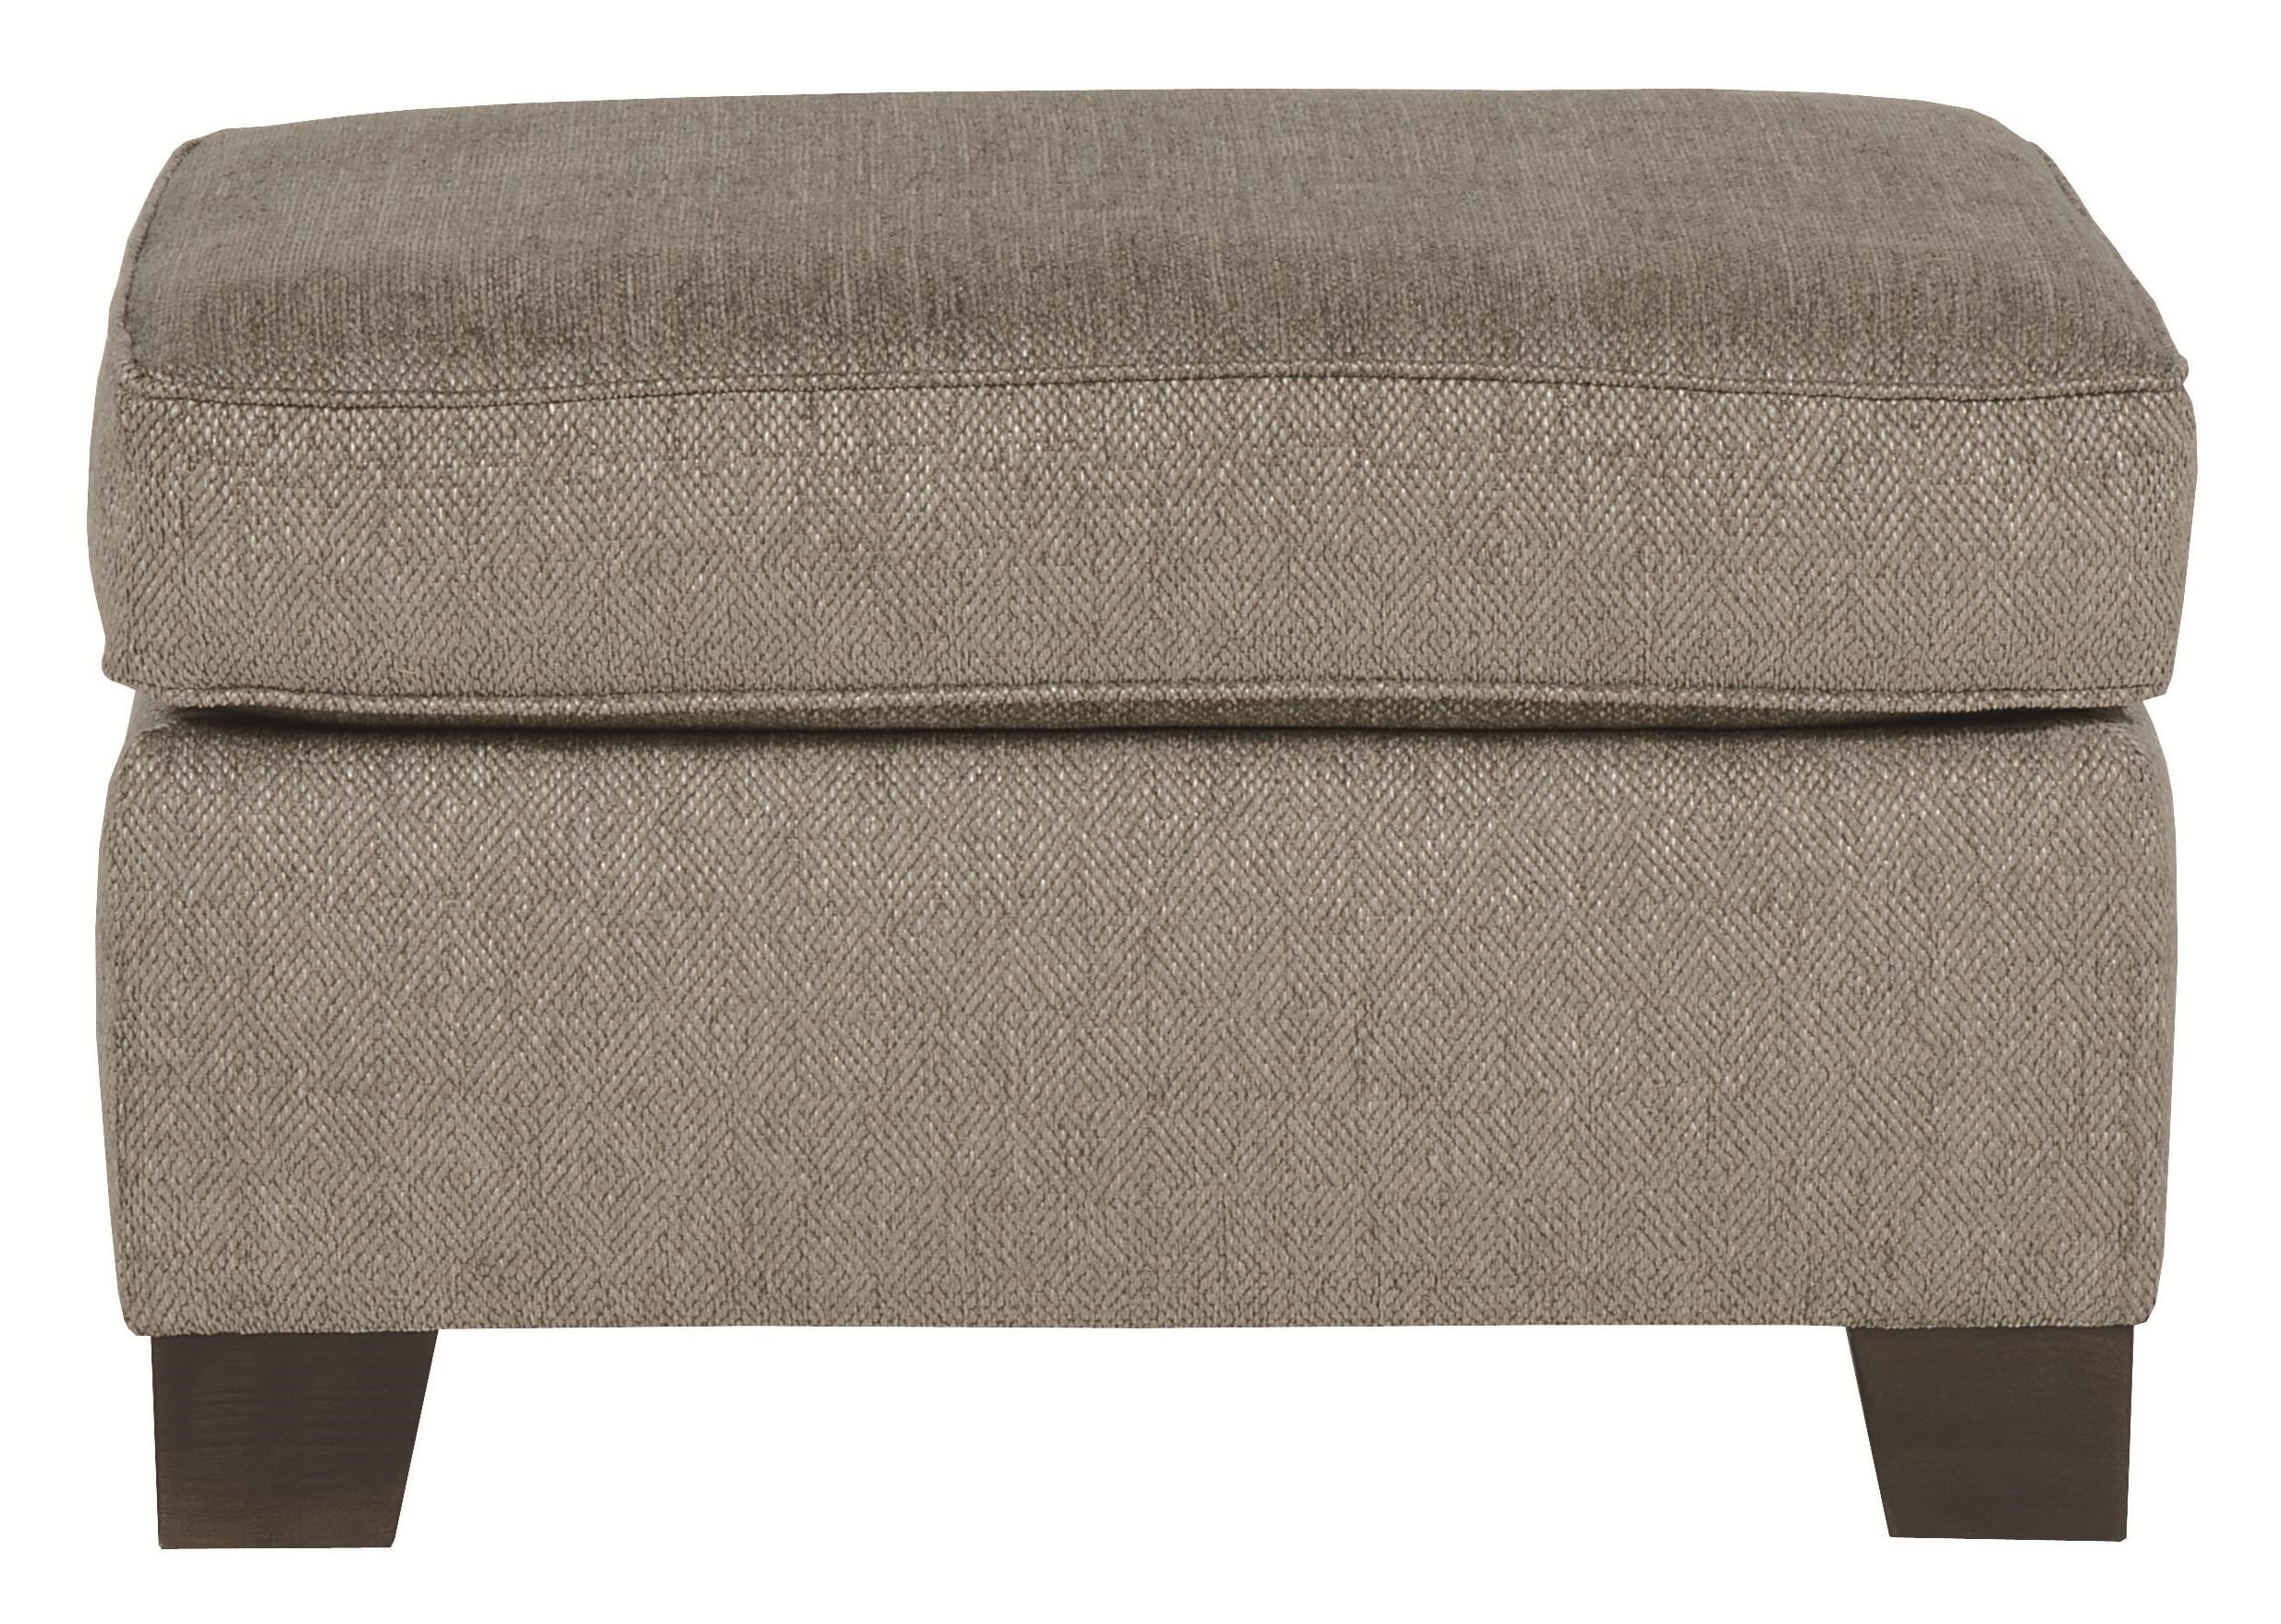 urban accents furniture. Bernhardt Interiors - Franco Simplistically Crafted Footrest Ottoman For Urban  Accent To Living Room Chair Urban Accents Furniture